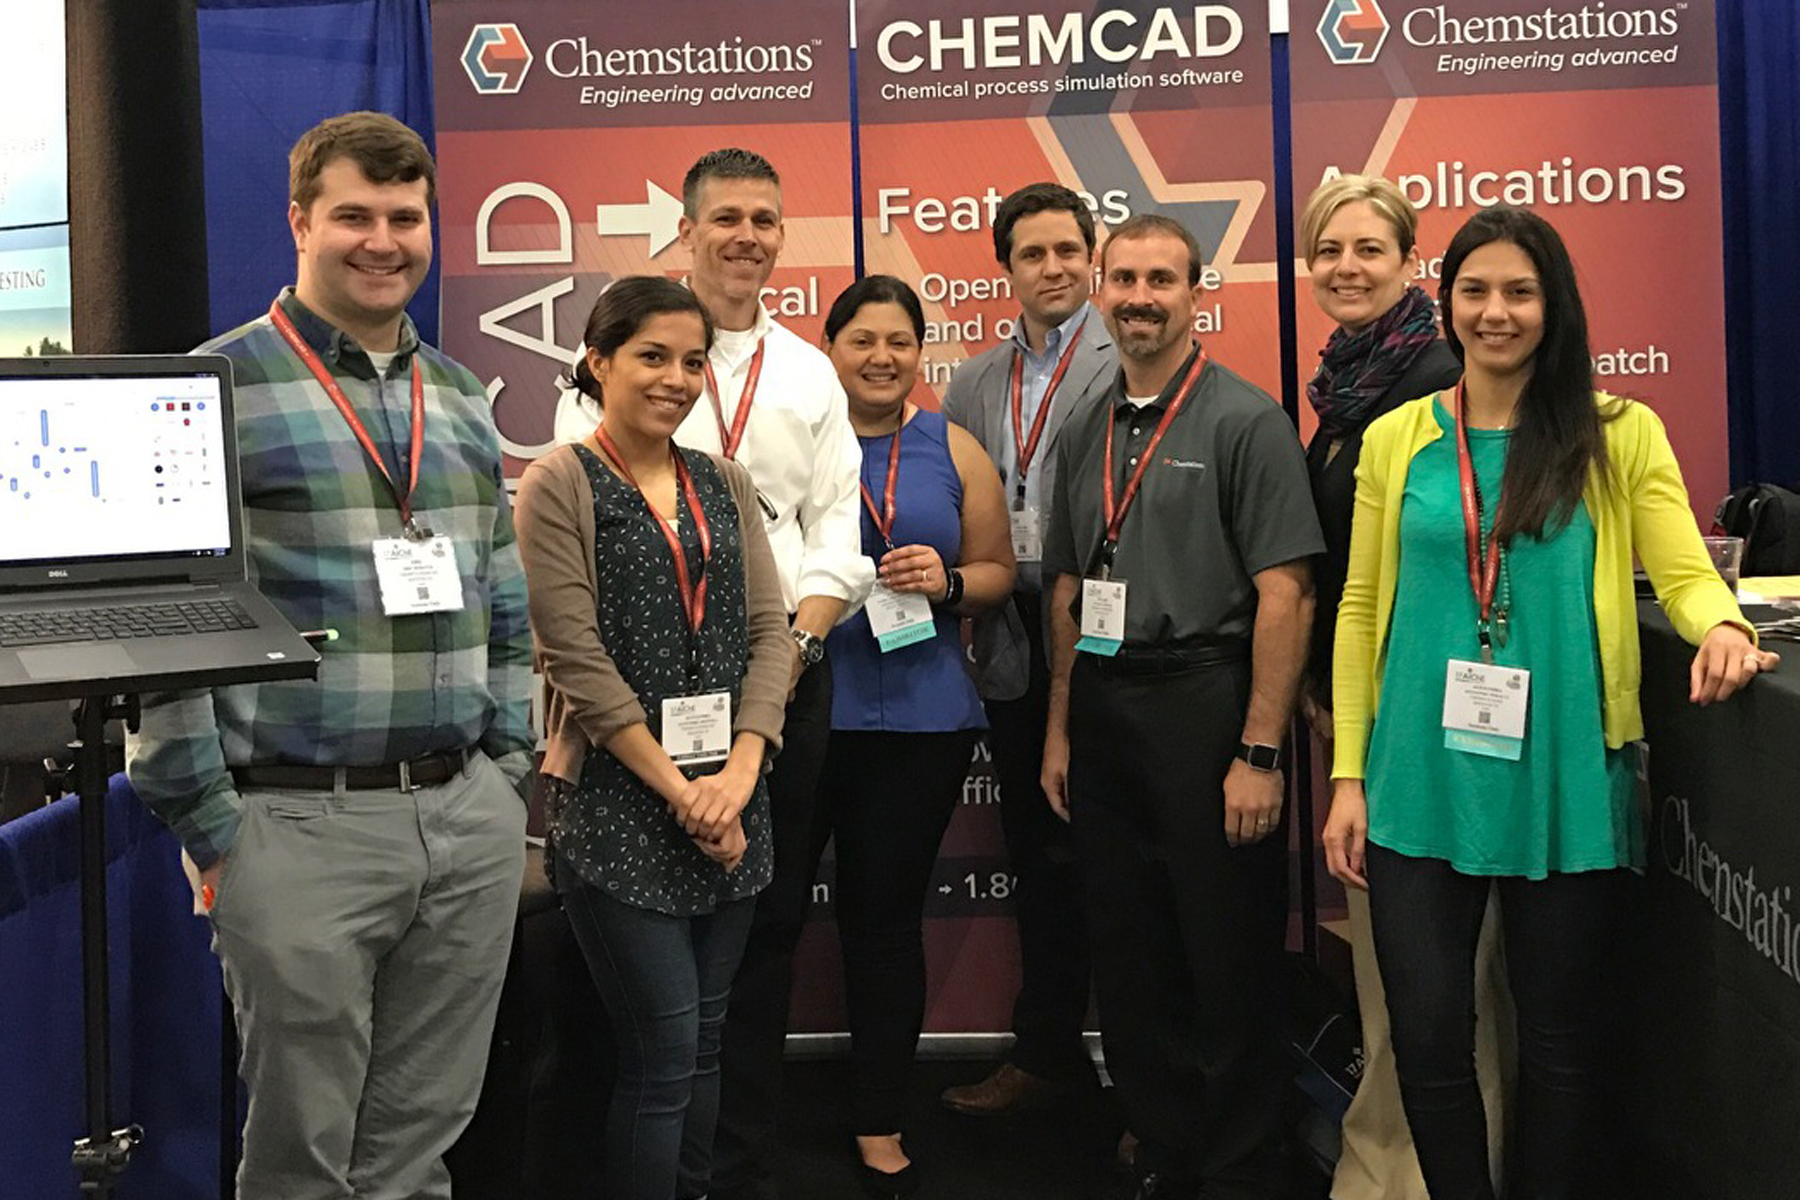 Chemstations staff at AIChE's 2017 Spring Meeting